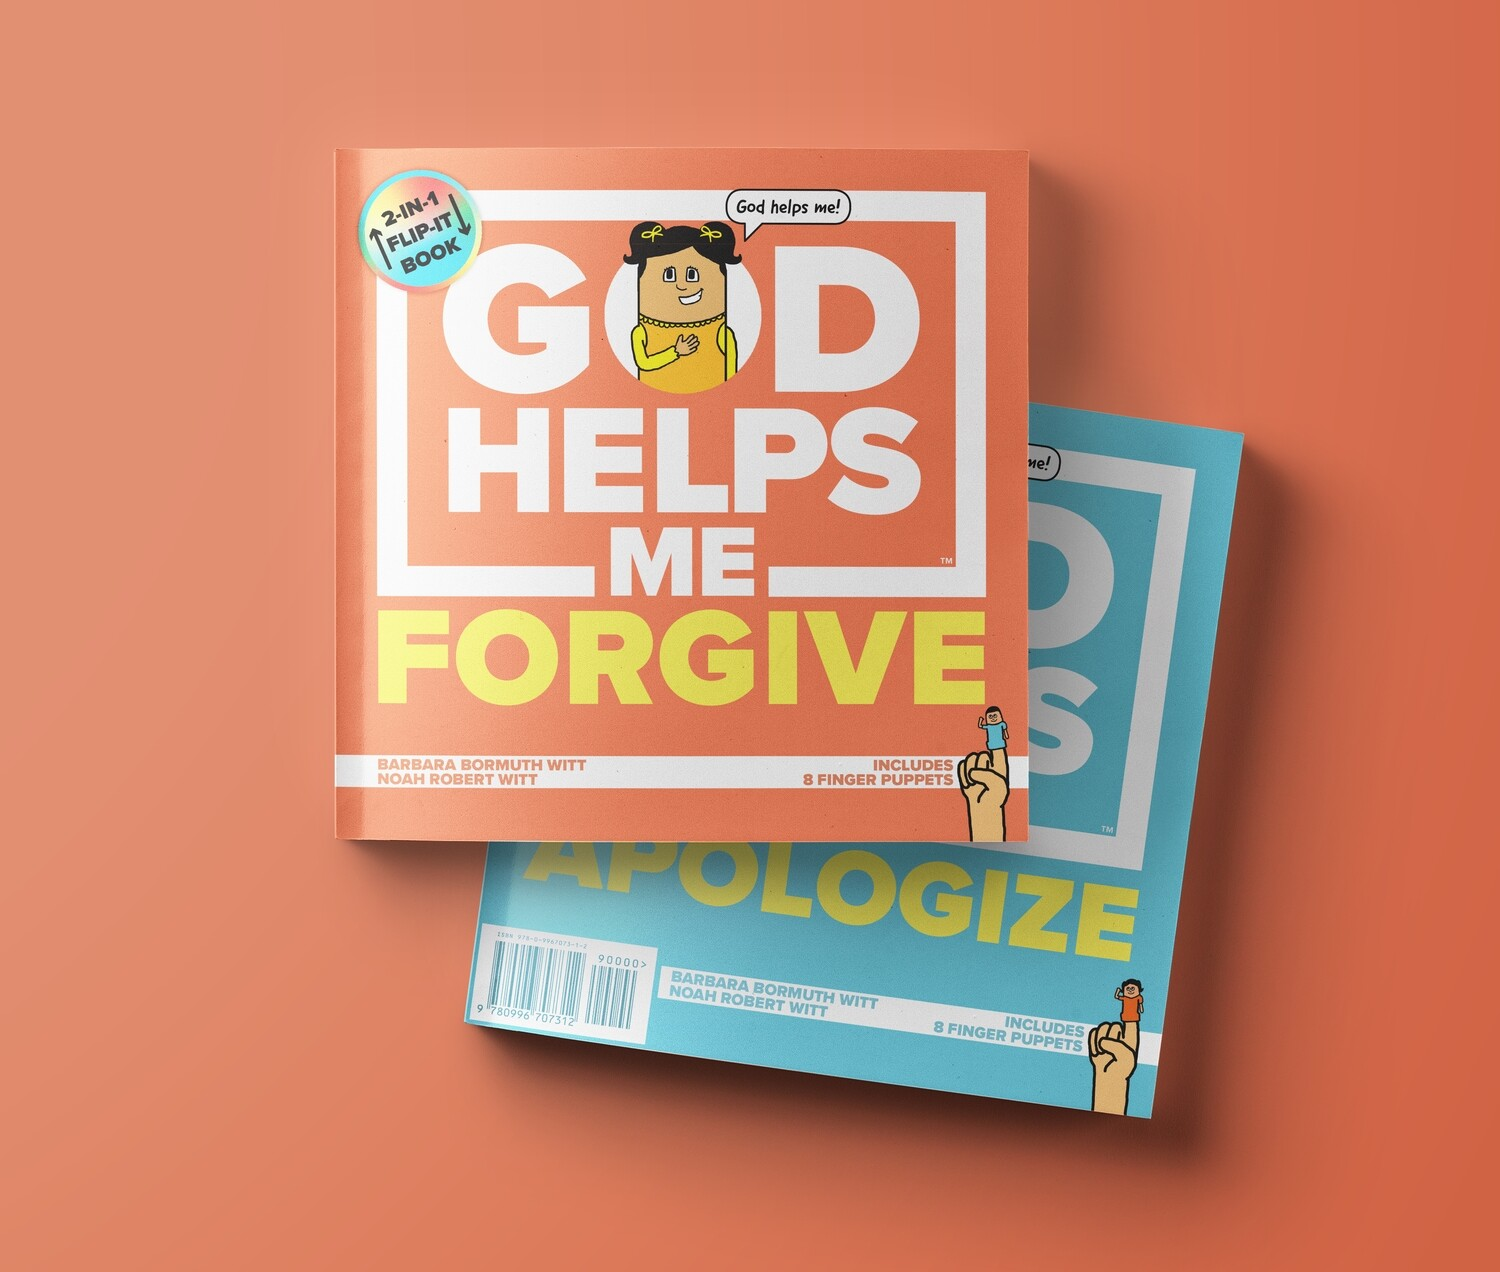 God Helps Me Forgive & Apologize: 2-in-1 Flip-it Book